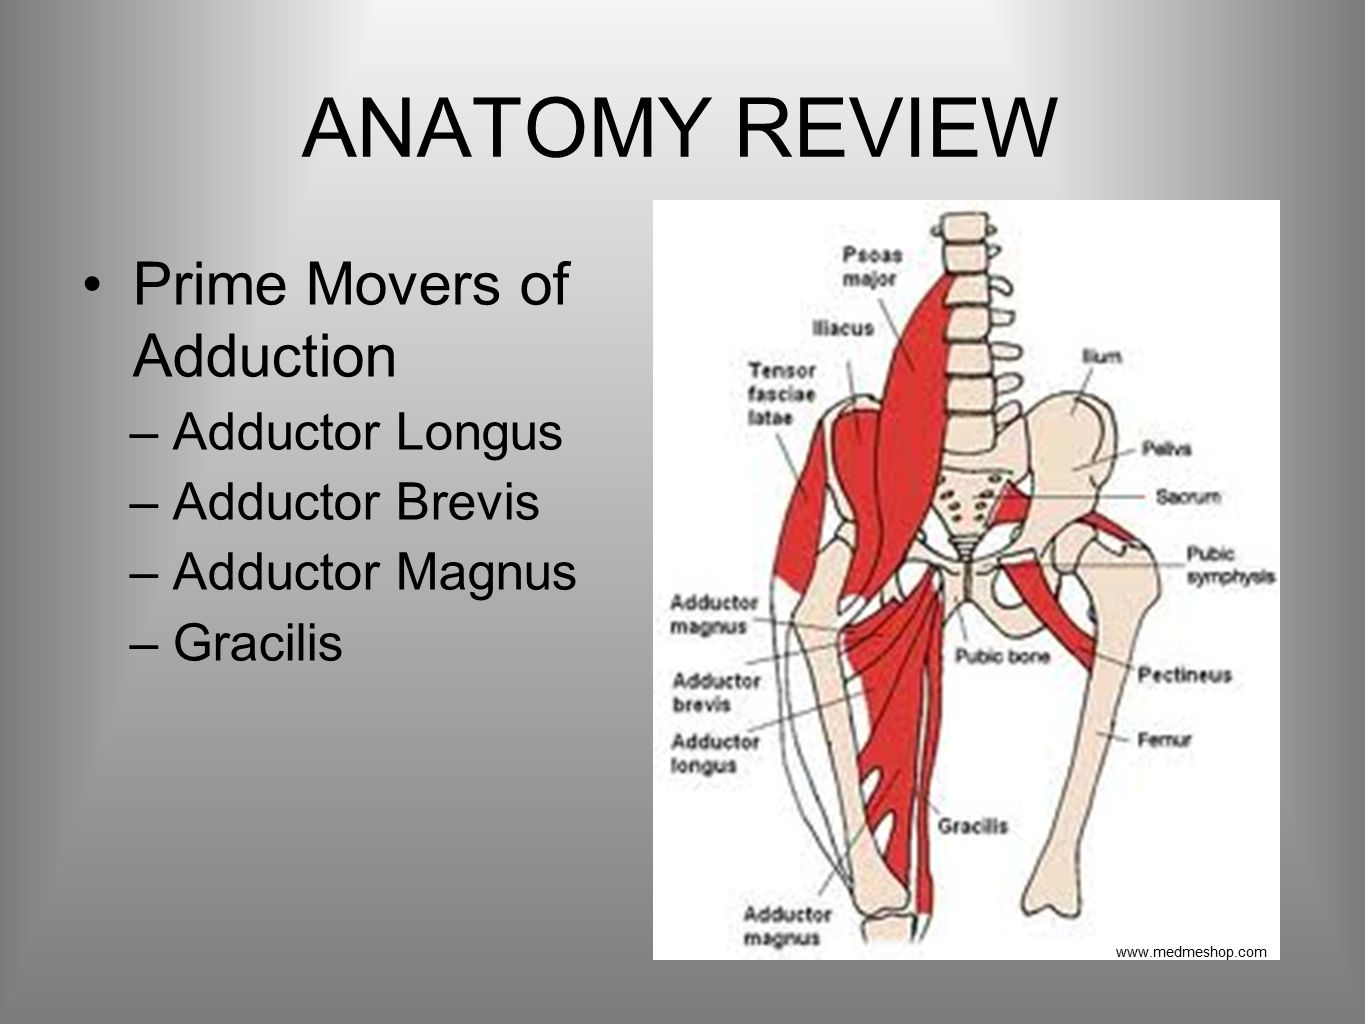 ANATOMY REVIEW Prime Movers of Adduction –Adductor Longus –Adductor Brevis –Adductor Magnus –Gracilis www.medmeshop.com